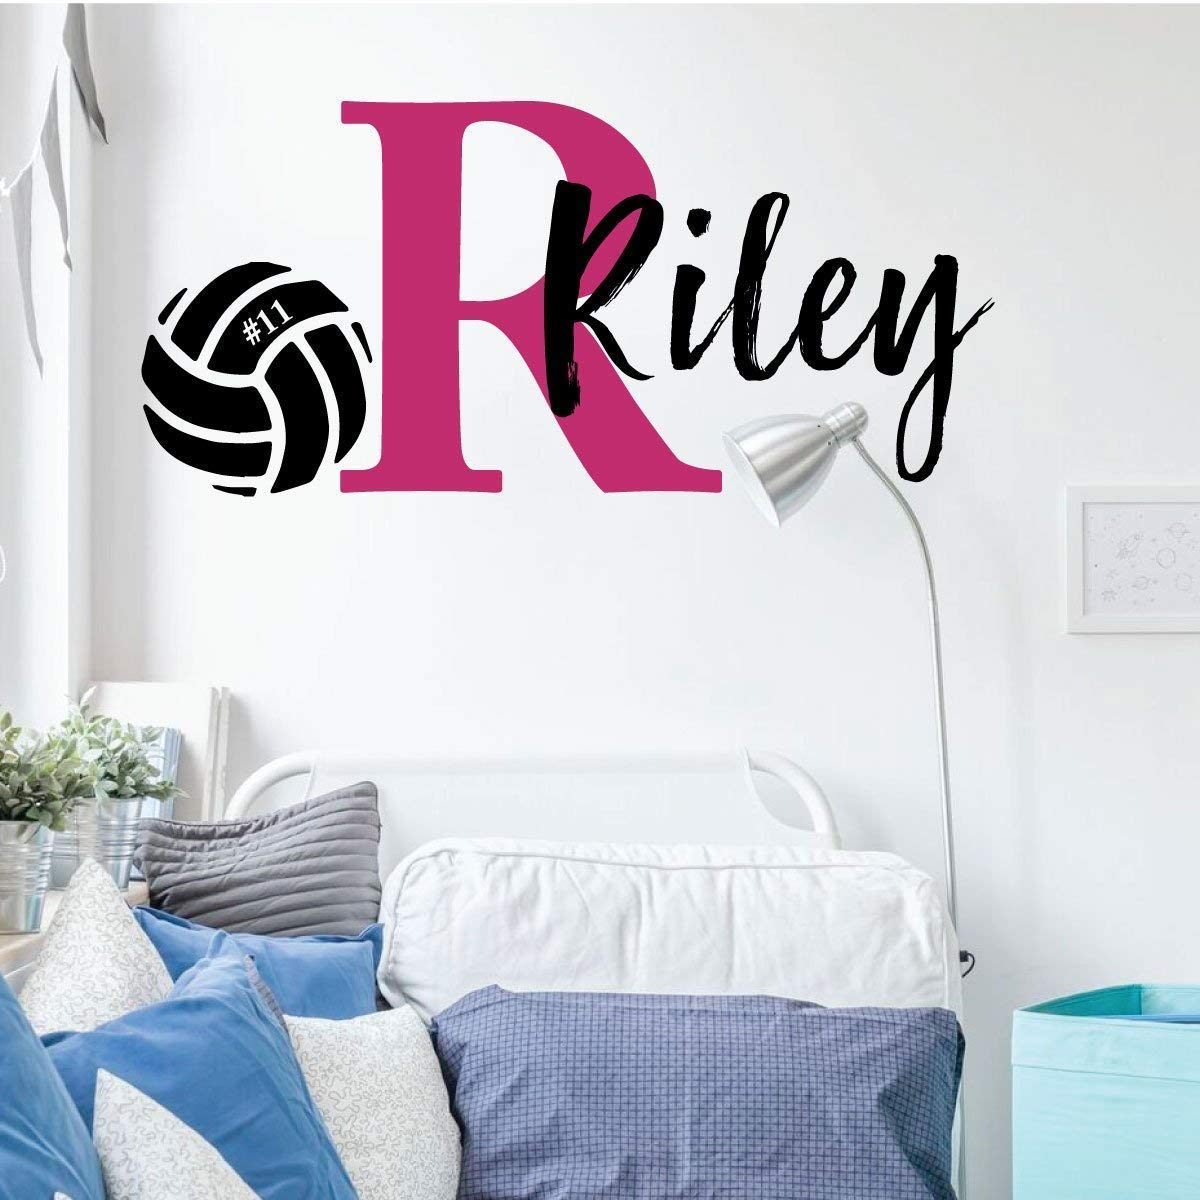 Volleyball Wall Decal | Personalized Monogram Vinyl Decor for Bedroom or Playroom | Sports Team Decoration | Black, White, Red, Blue, Green, Purple, Pink, Yellow, Other Colors | Small, Large Sizes